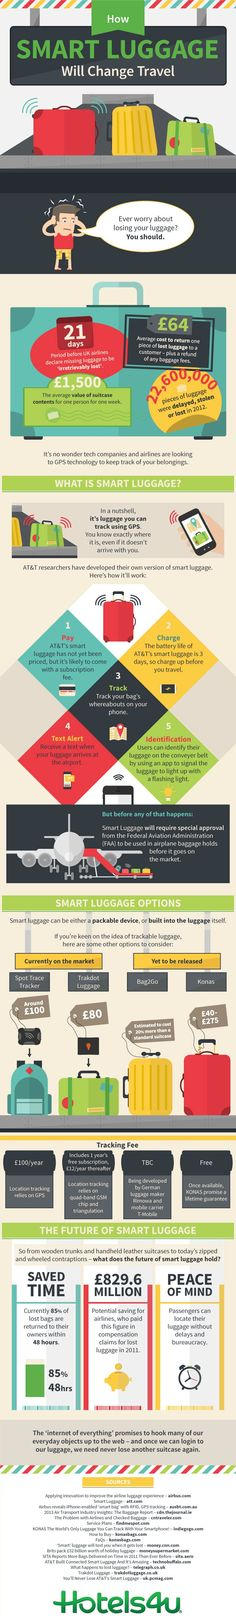 How Smart Luggage Will Change Travel #infographic #travel #Technology